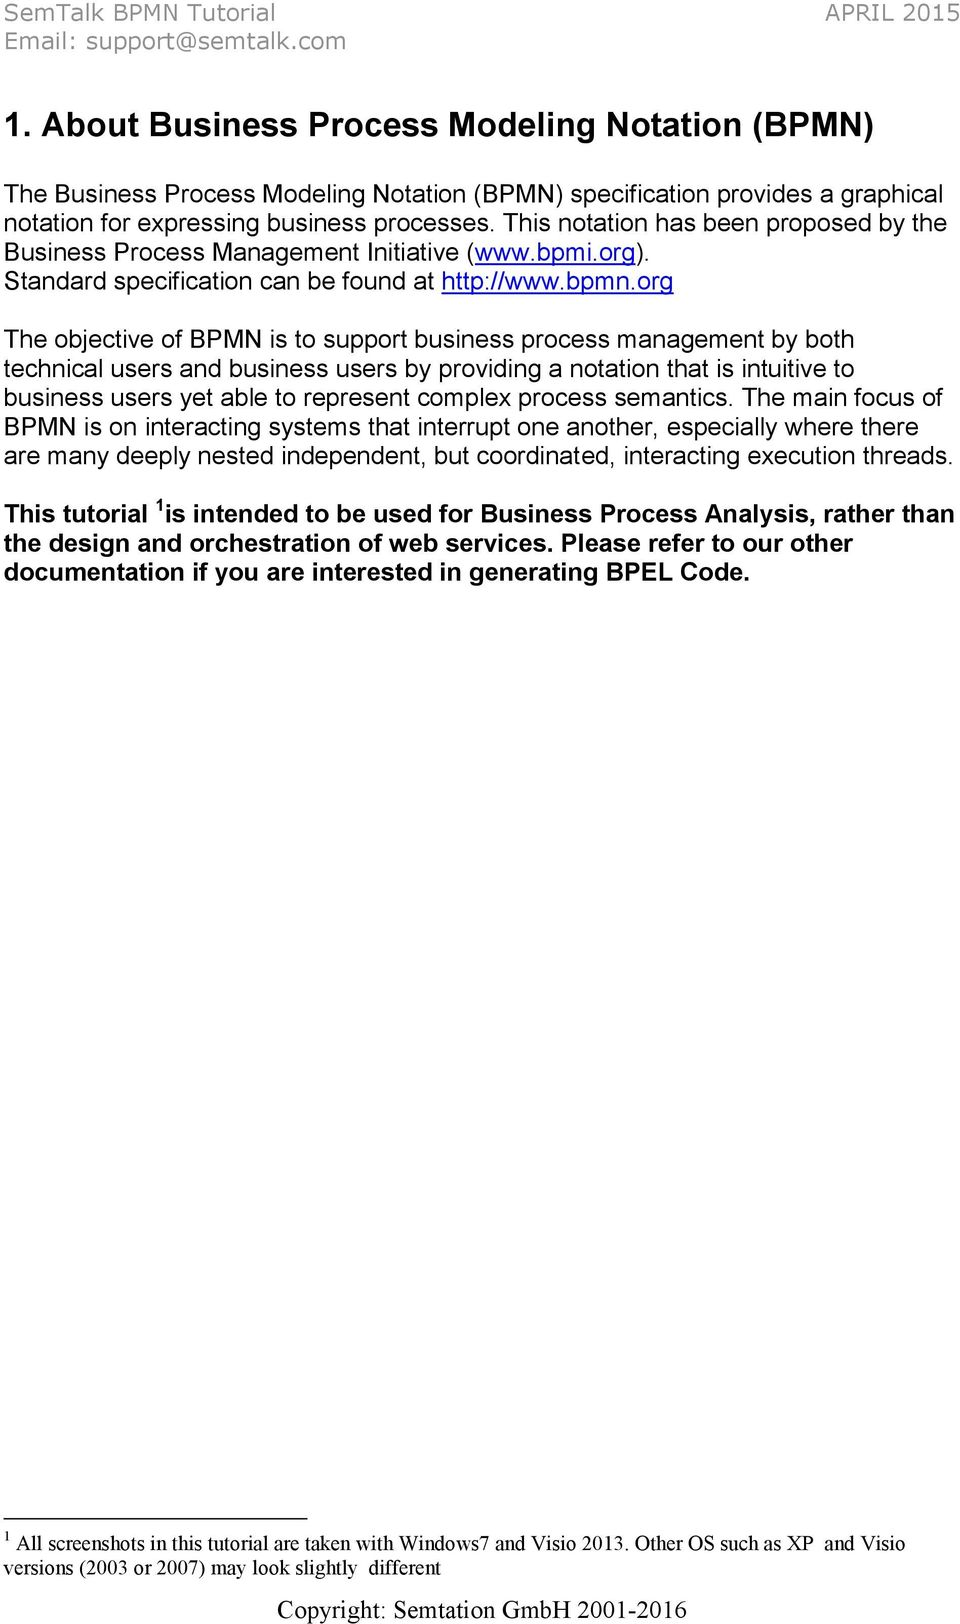 business analysis second edition pdf